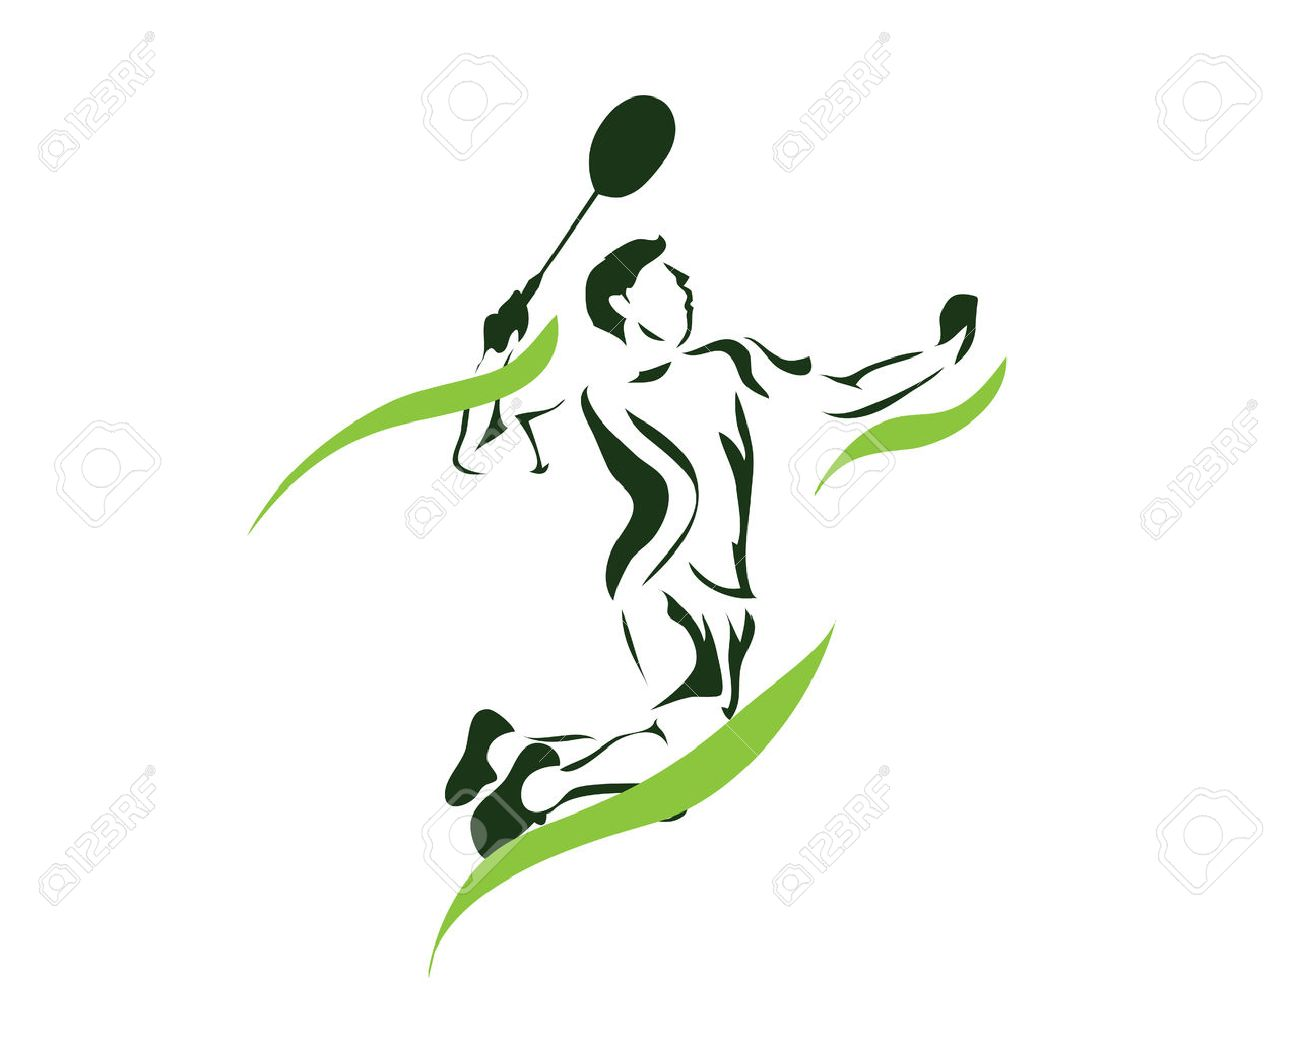 Modern Passionate Badminton Player In Action Logo.